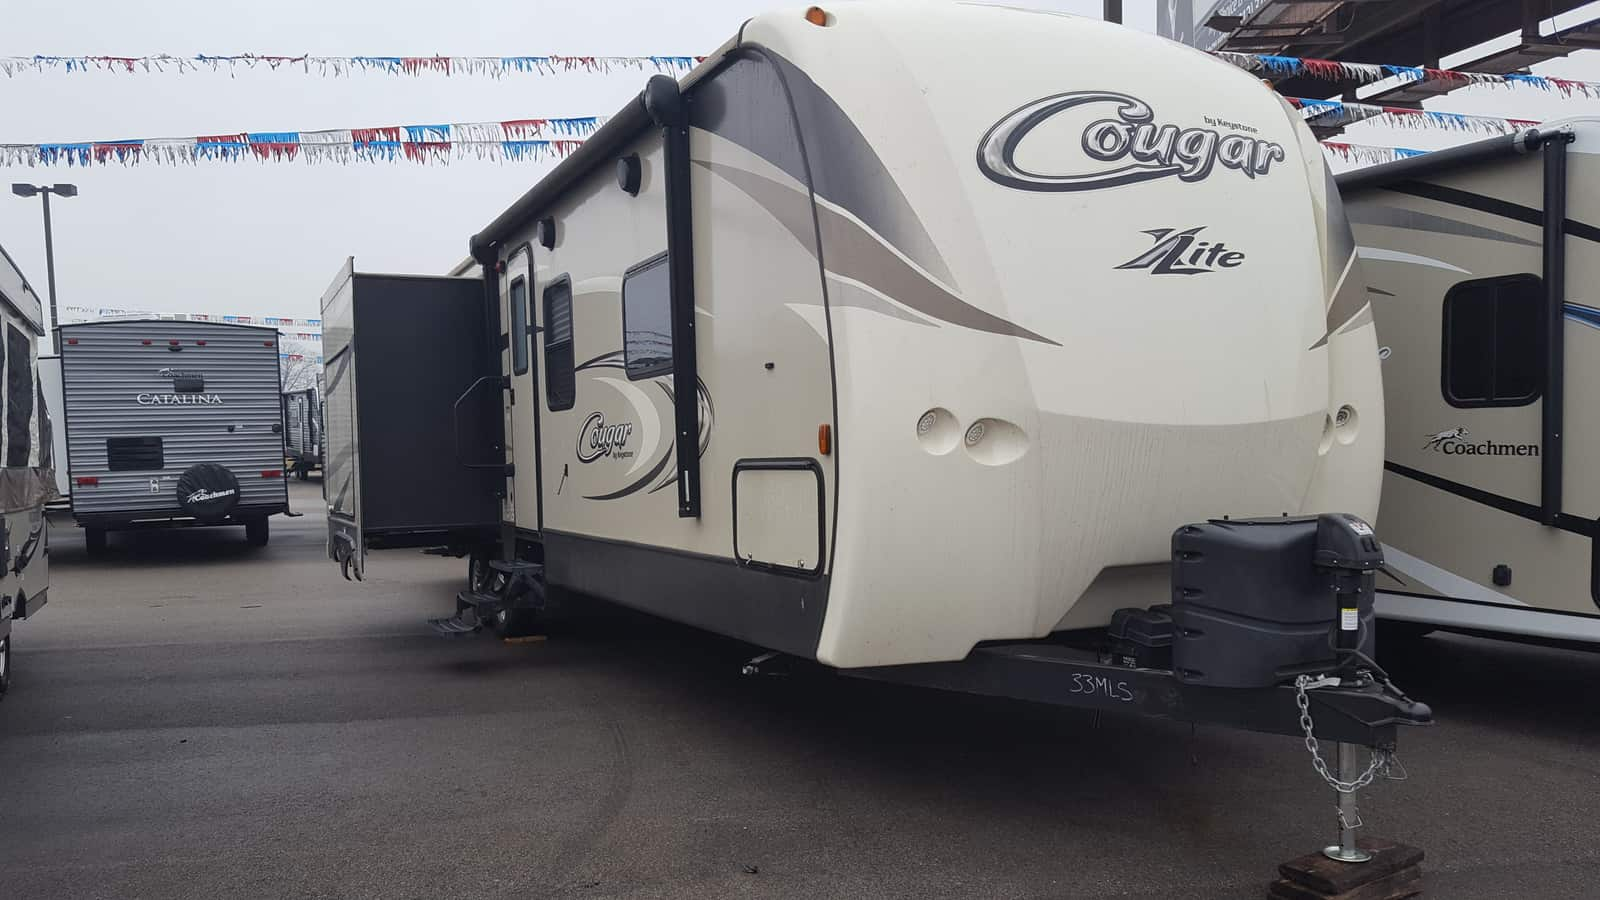 USED 2016 Keystone COUGAR 33MLS - American RV